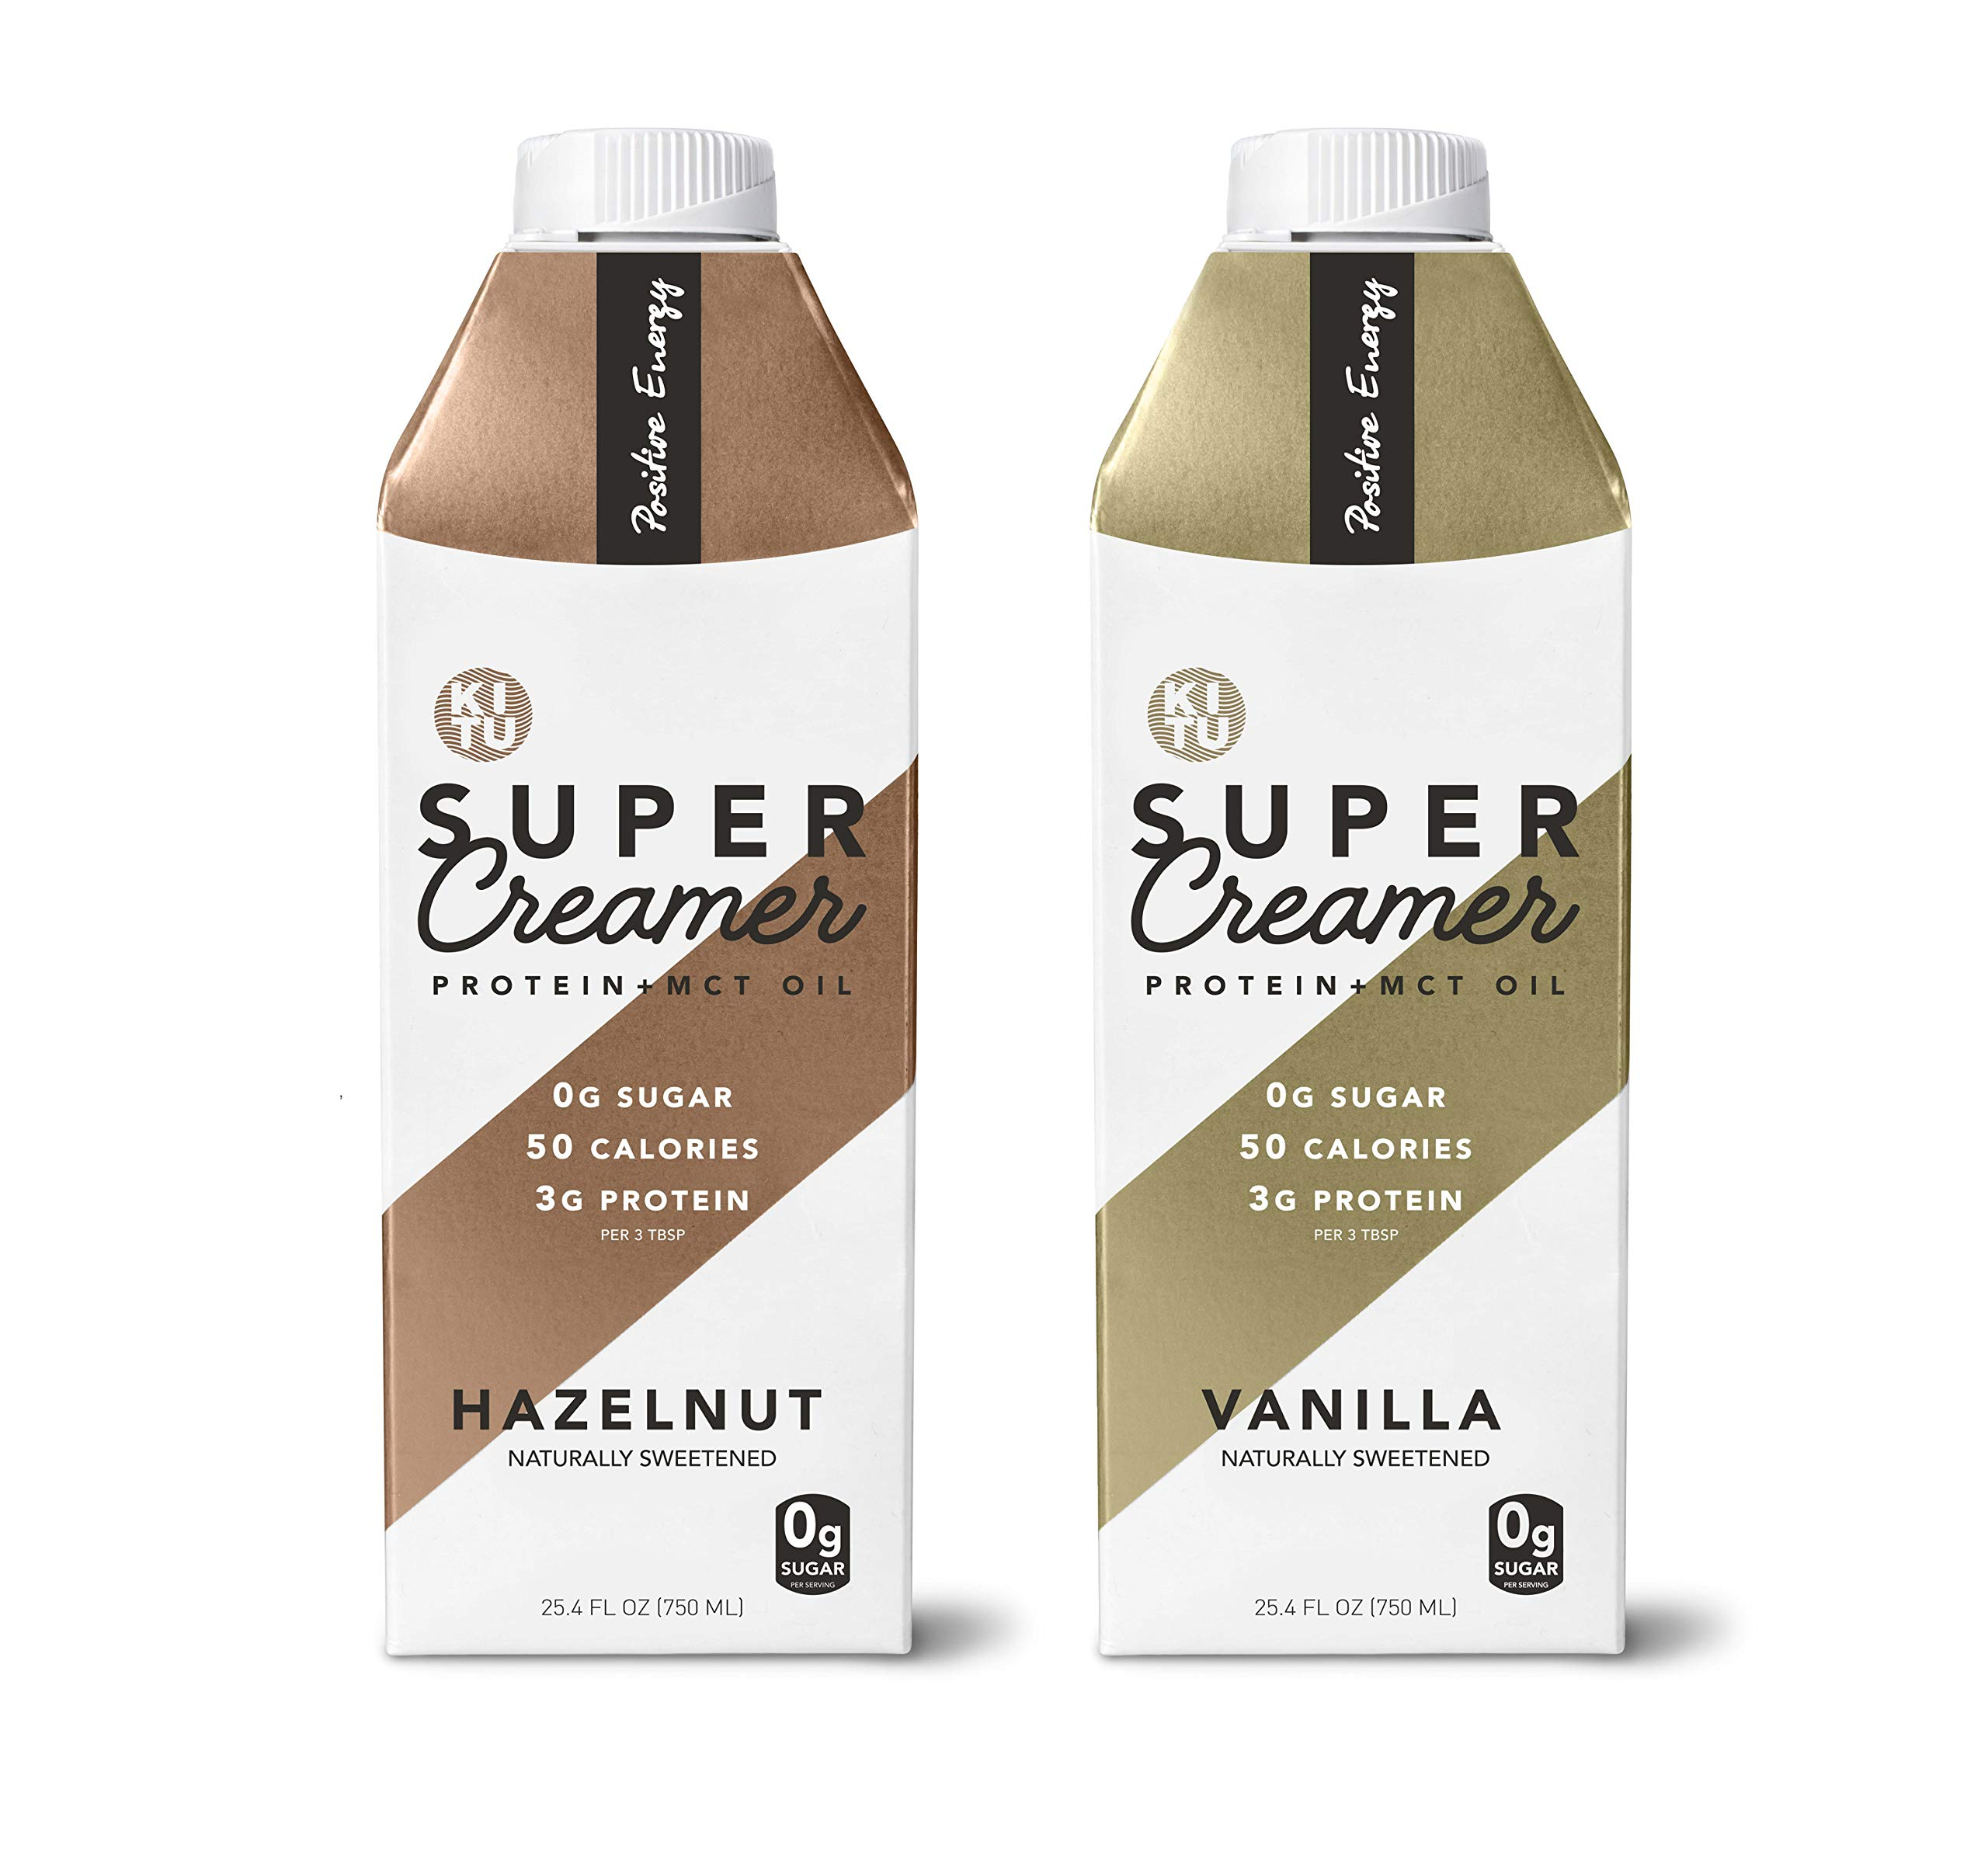 Kitu by Sunniva Super Creamer with Protein and MCT Oil, Keto Approved, 0g Sugar, 3 g Protein, 50 Calories, Vanilla and Hazelnut 2-Pack Variety by SUNNIVA SUPER COFFEE